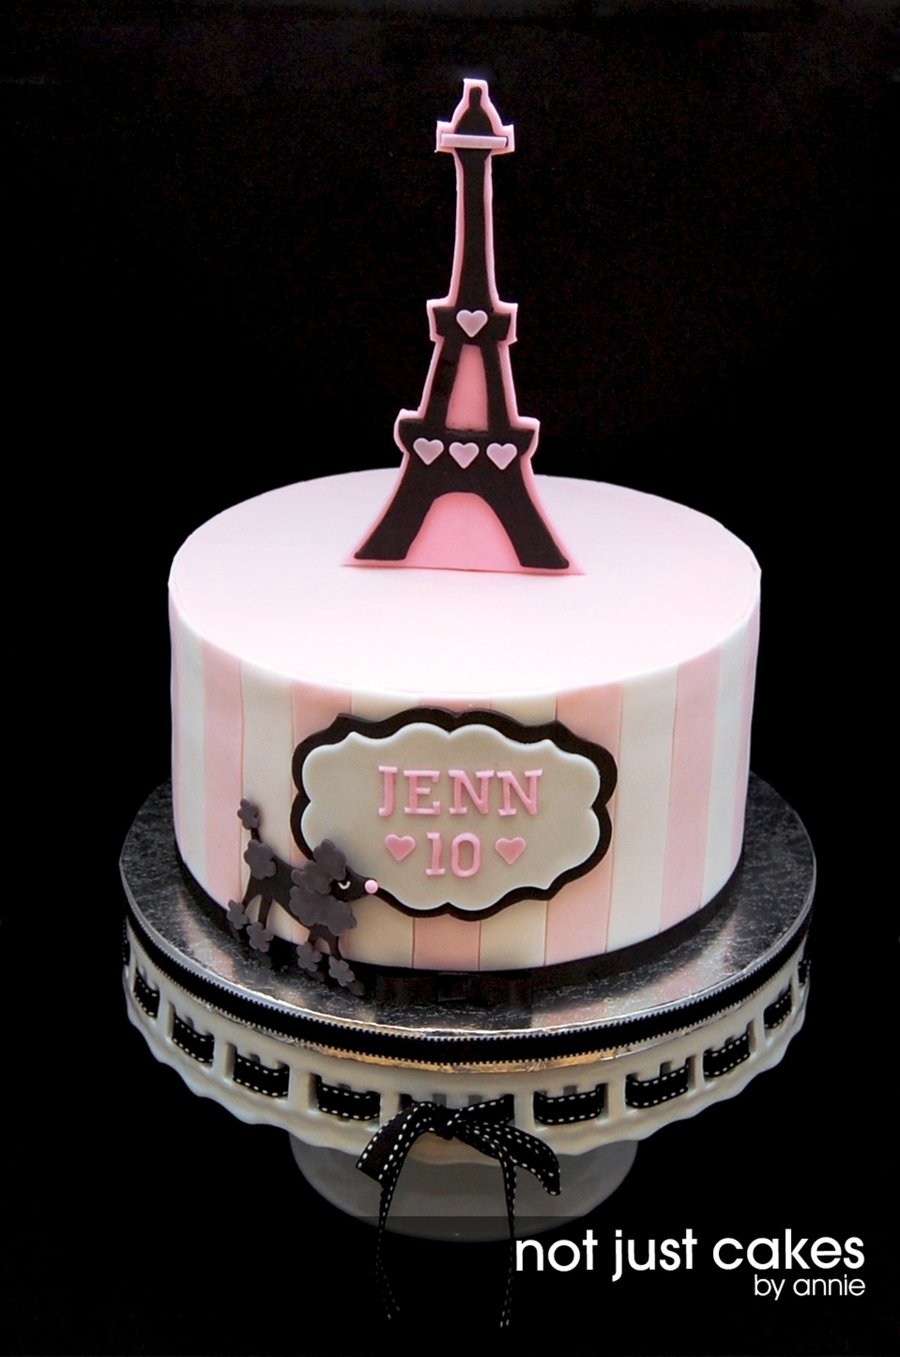 I Need Ideas For Decorating My Living Room: Pink And Black Paris Themed Cake